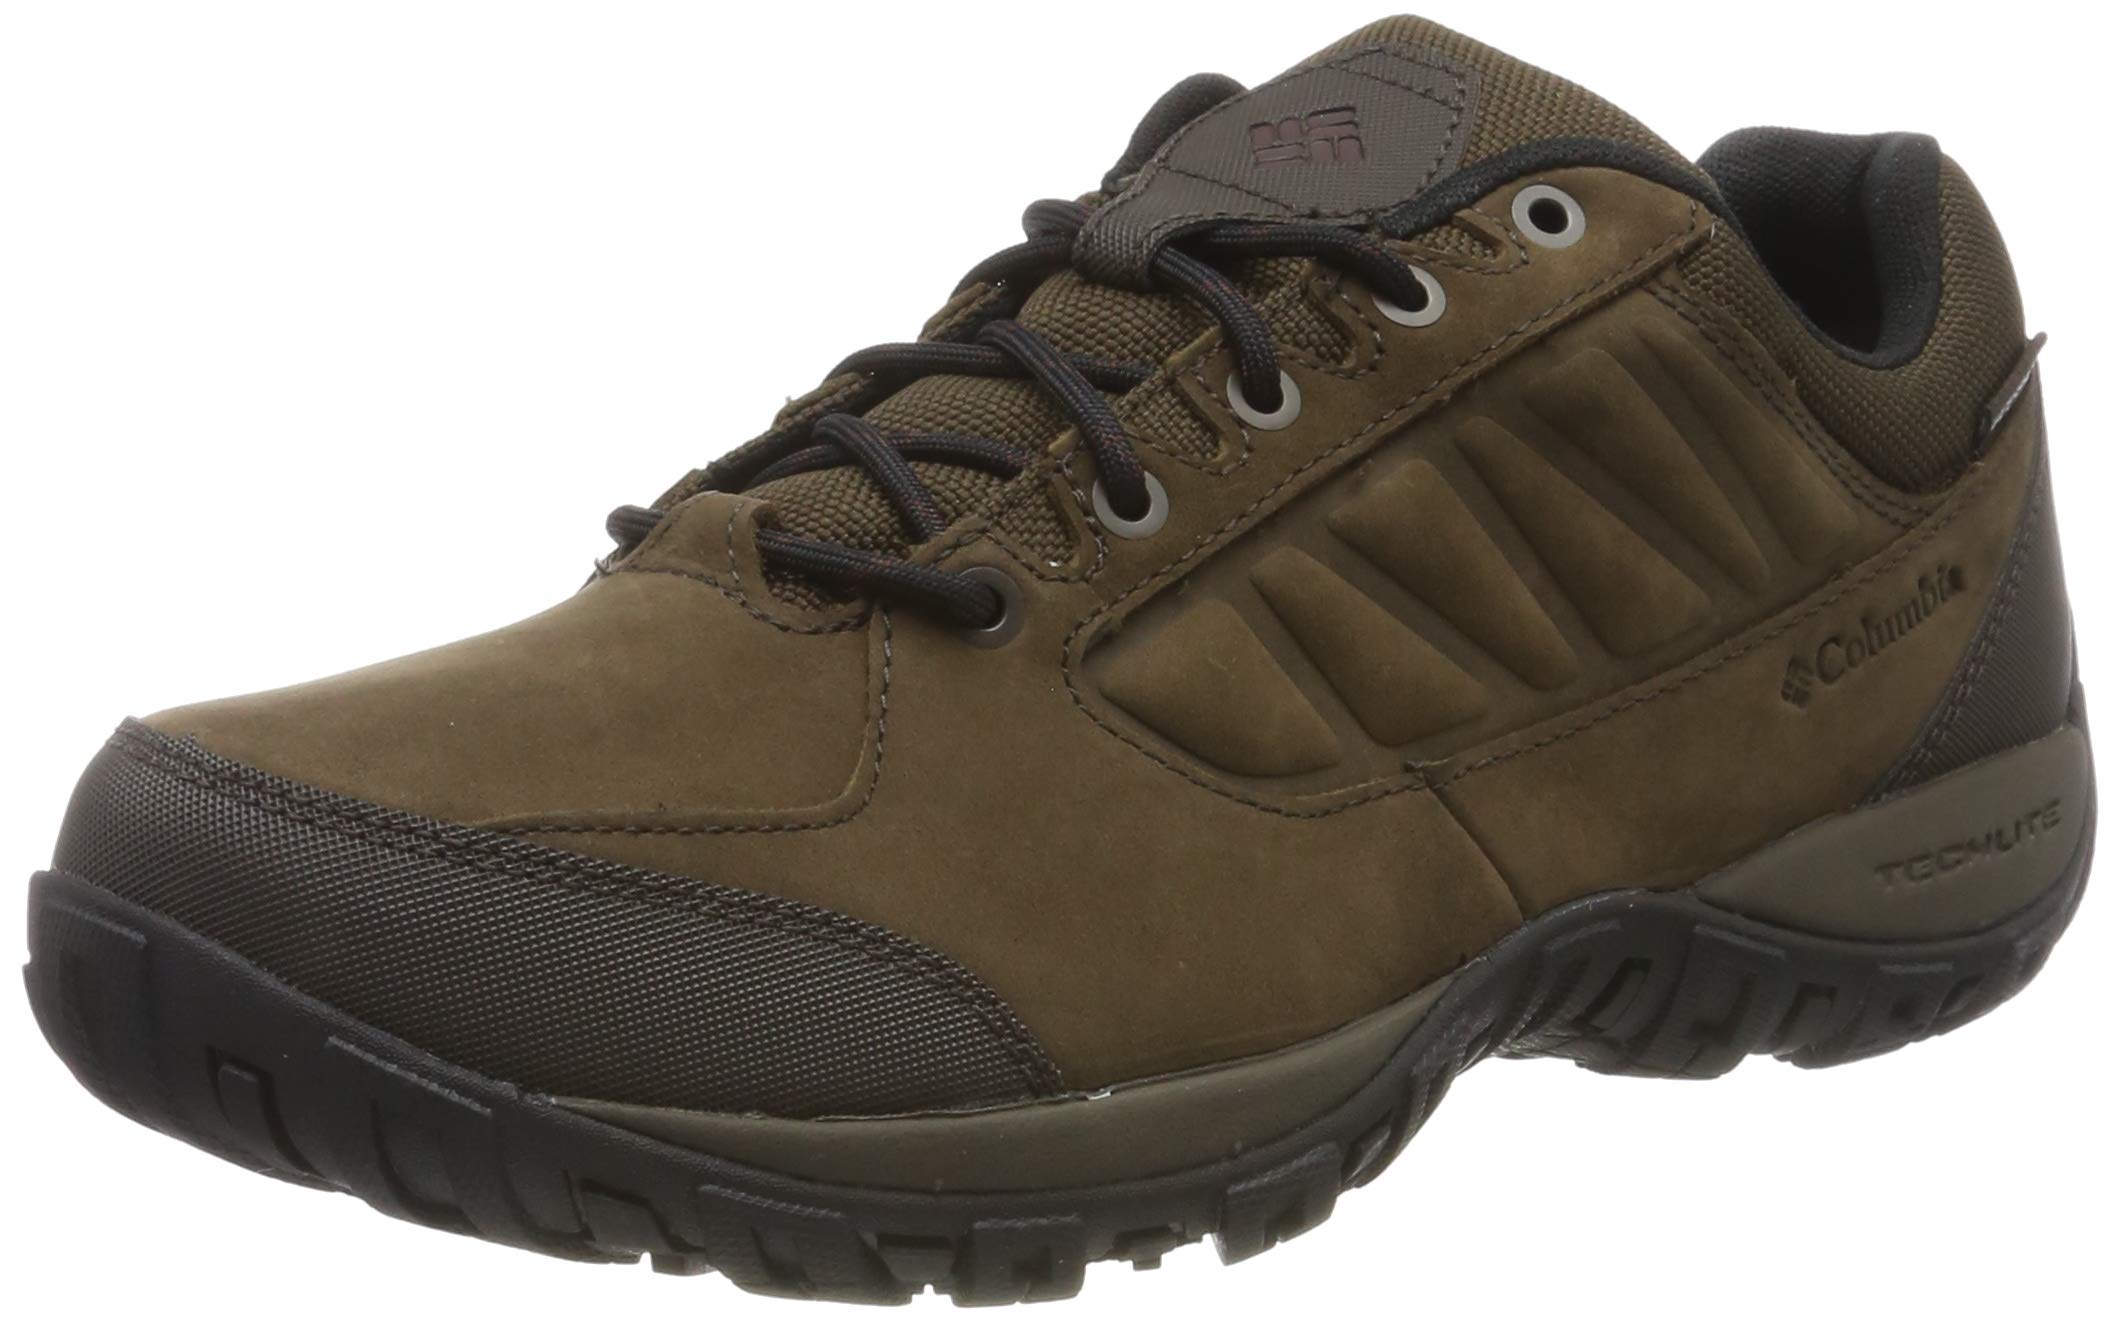 Plus Basses Ruckel Columbia Randonnée HommeMarroncordovanMadder Brown45 Eu De WaterproofChaussures Ridge 8n0Nwmv